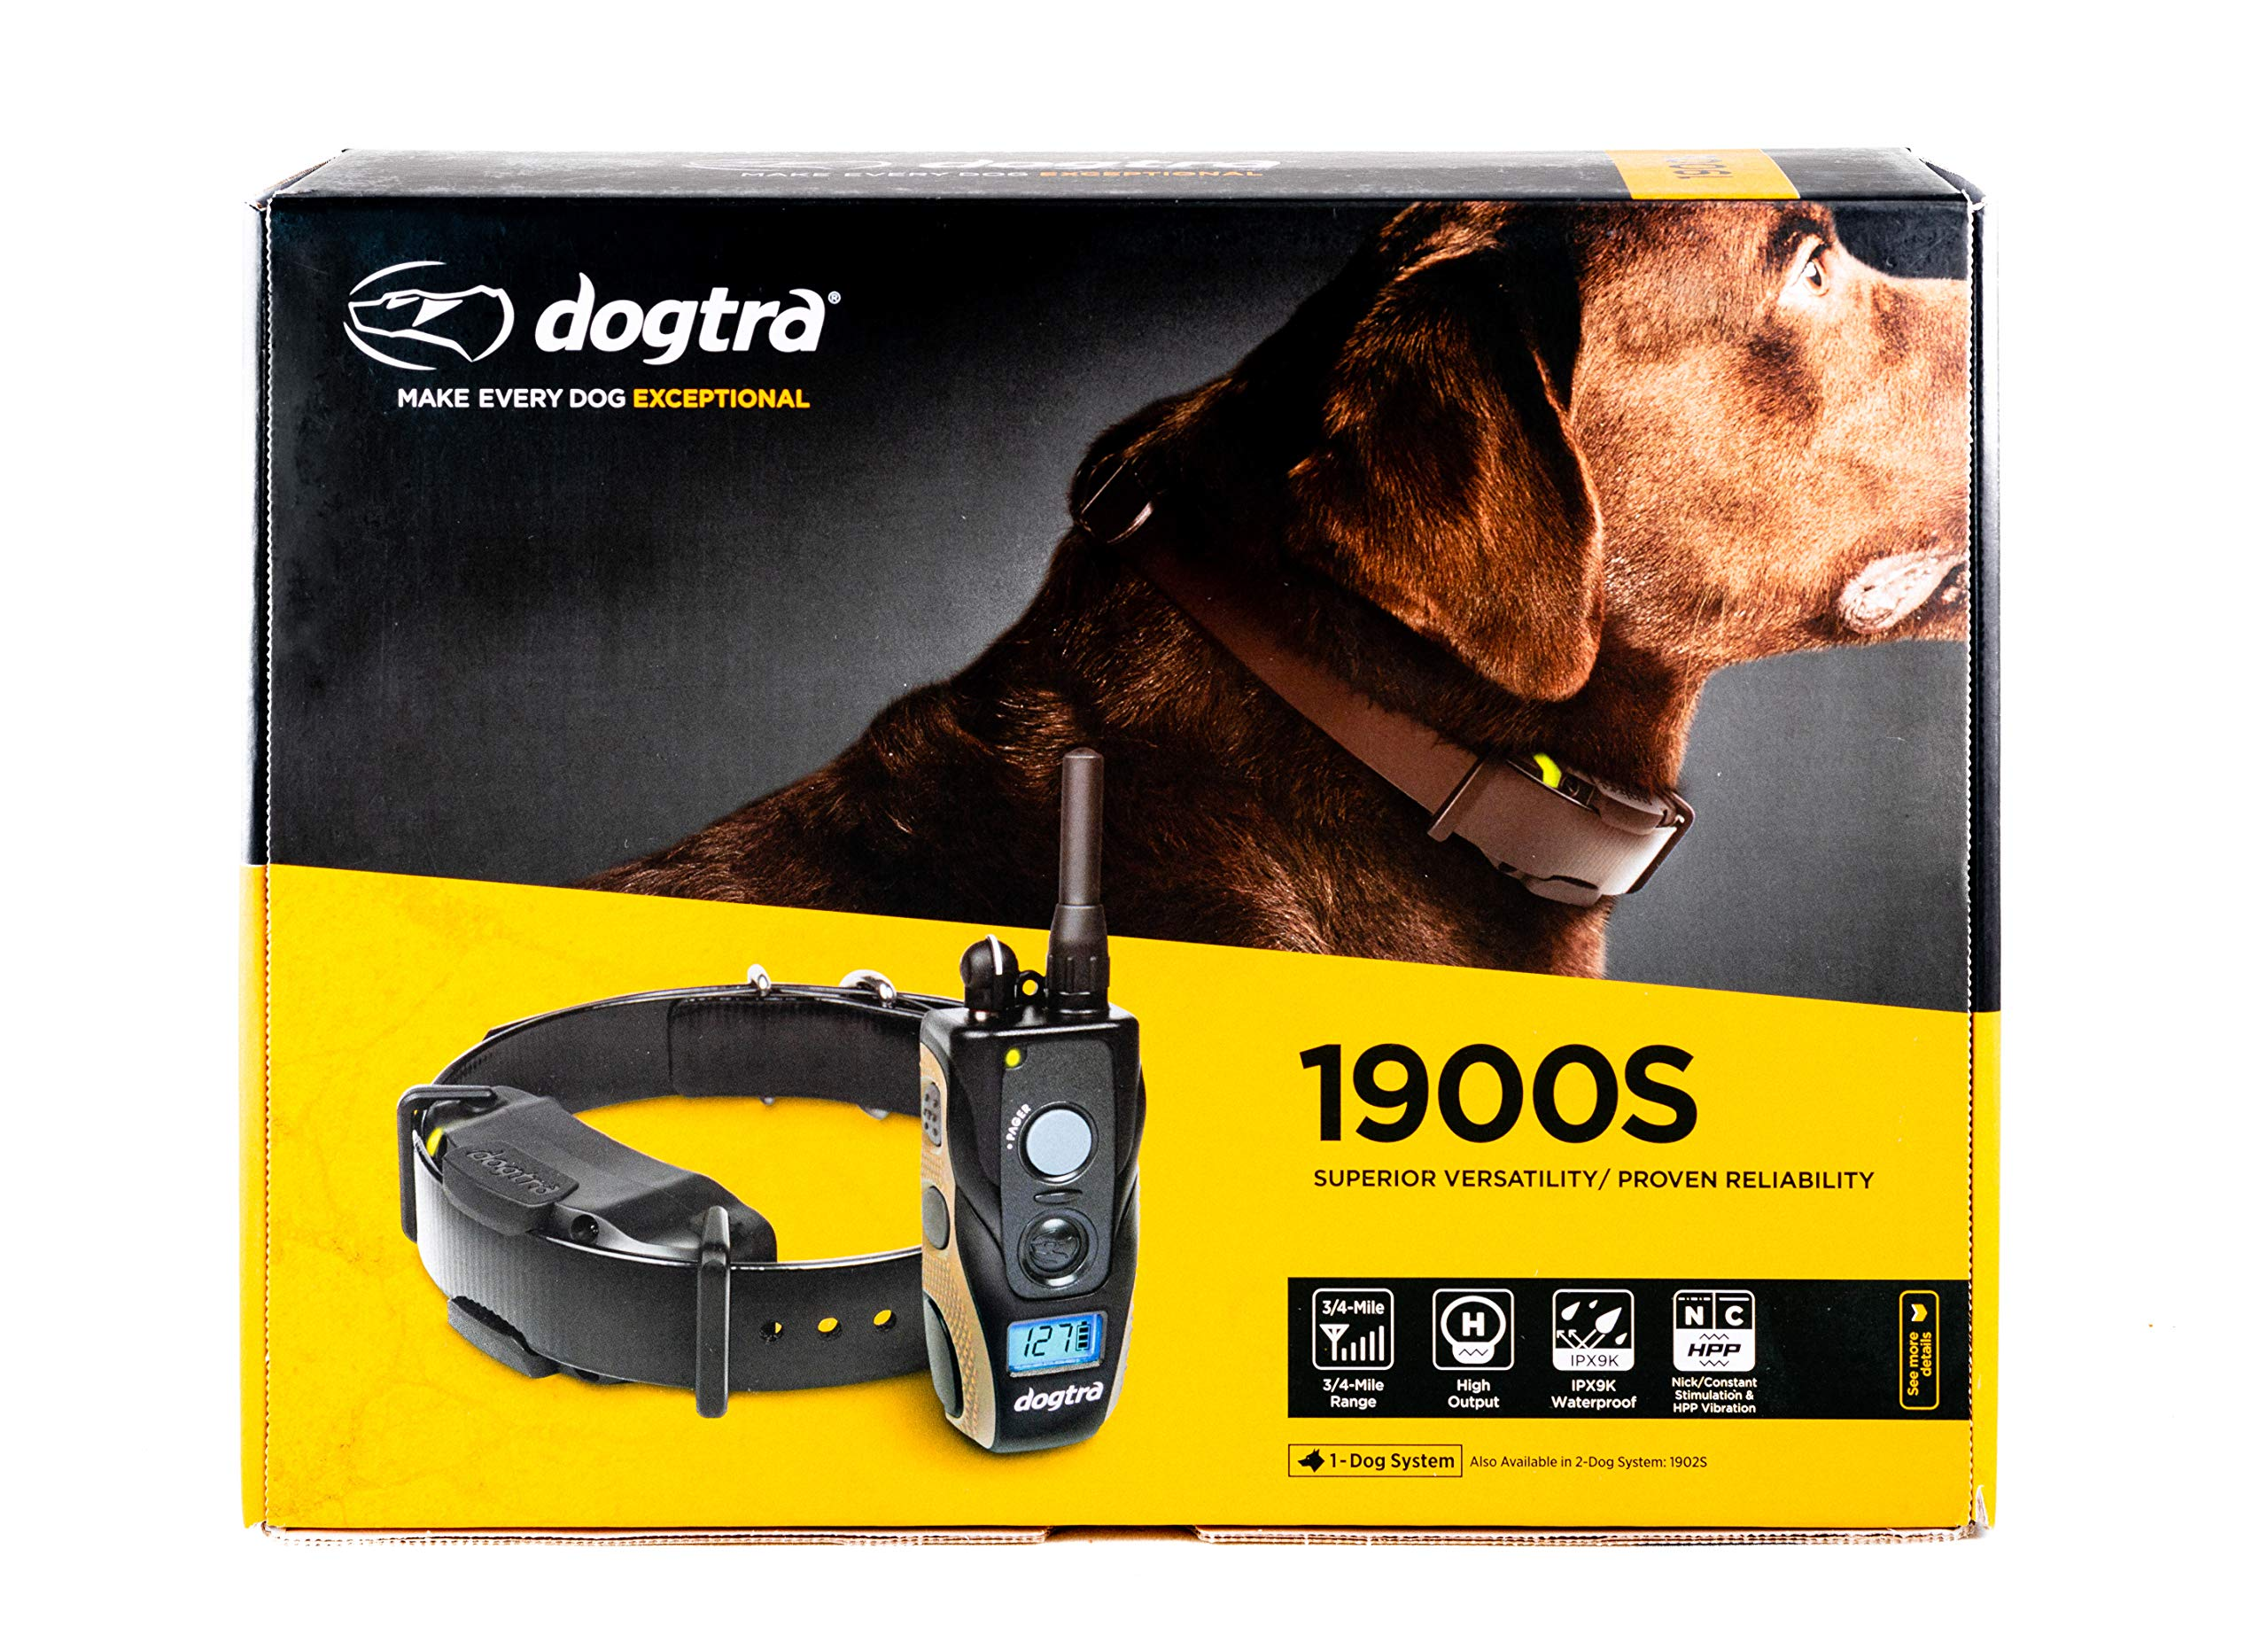 Dogtra Fieldmaster 1 Dog LCD Training Collar by Dogtra